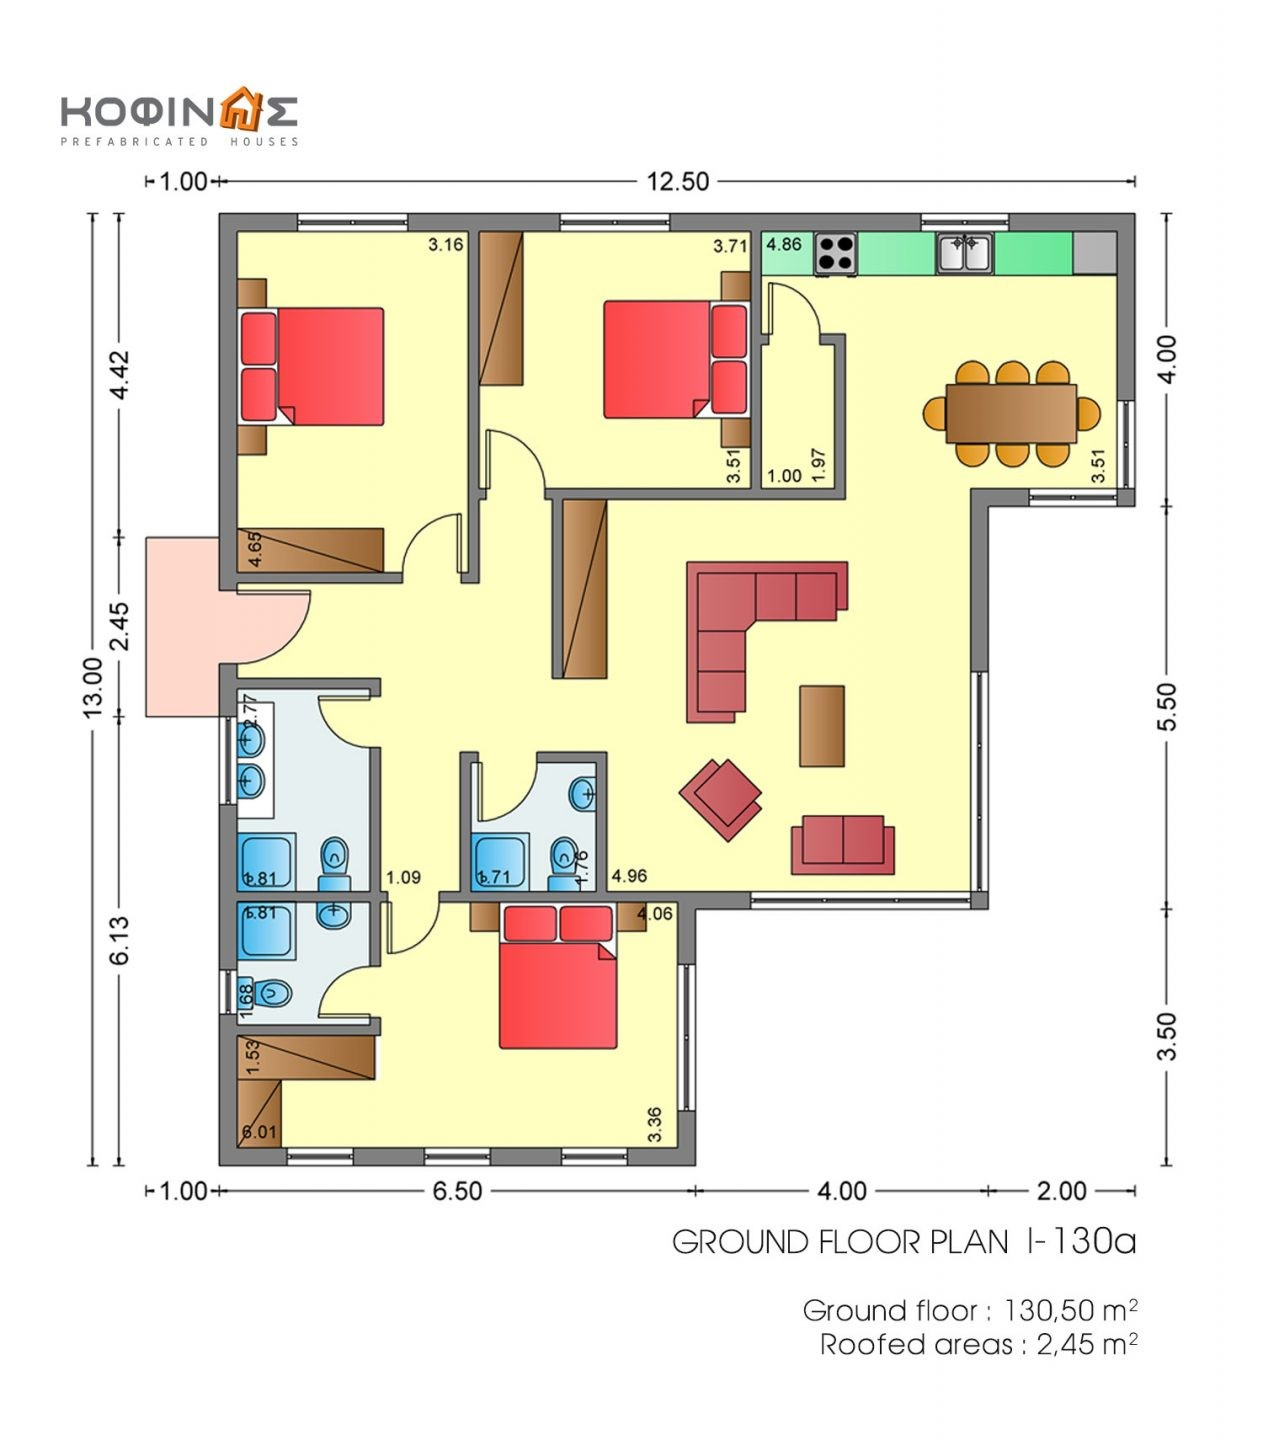 1-story house I-130a, total surface of 130,50 m²